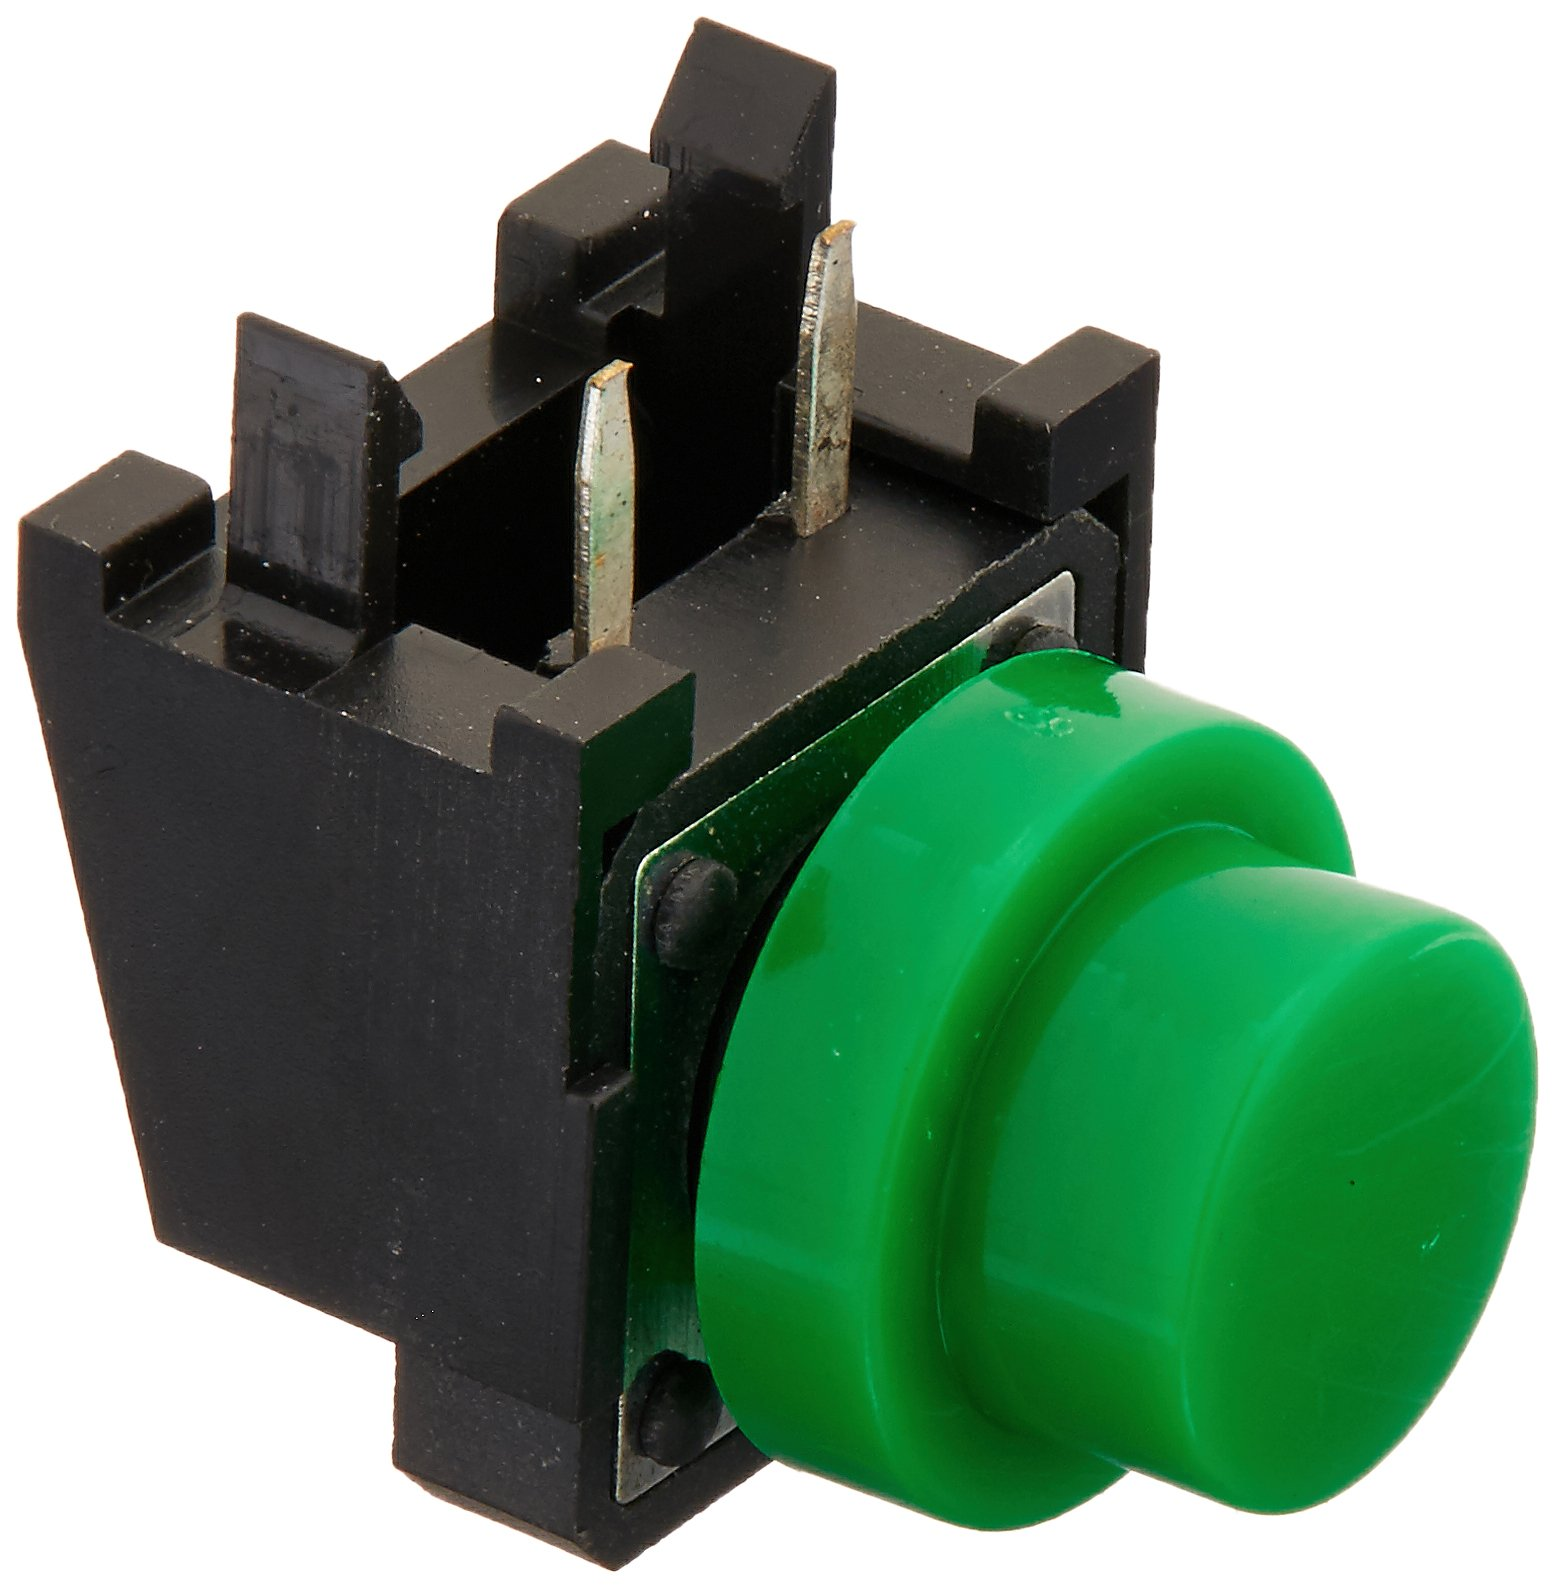 Uxcell Momentary Tactile/Push Button Switch, 12 x 12 x 13mm